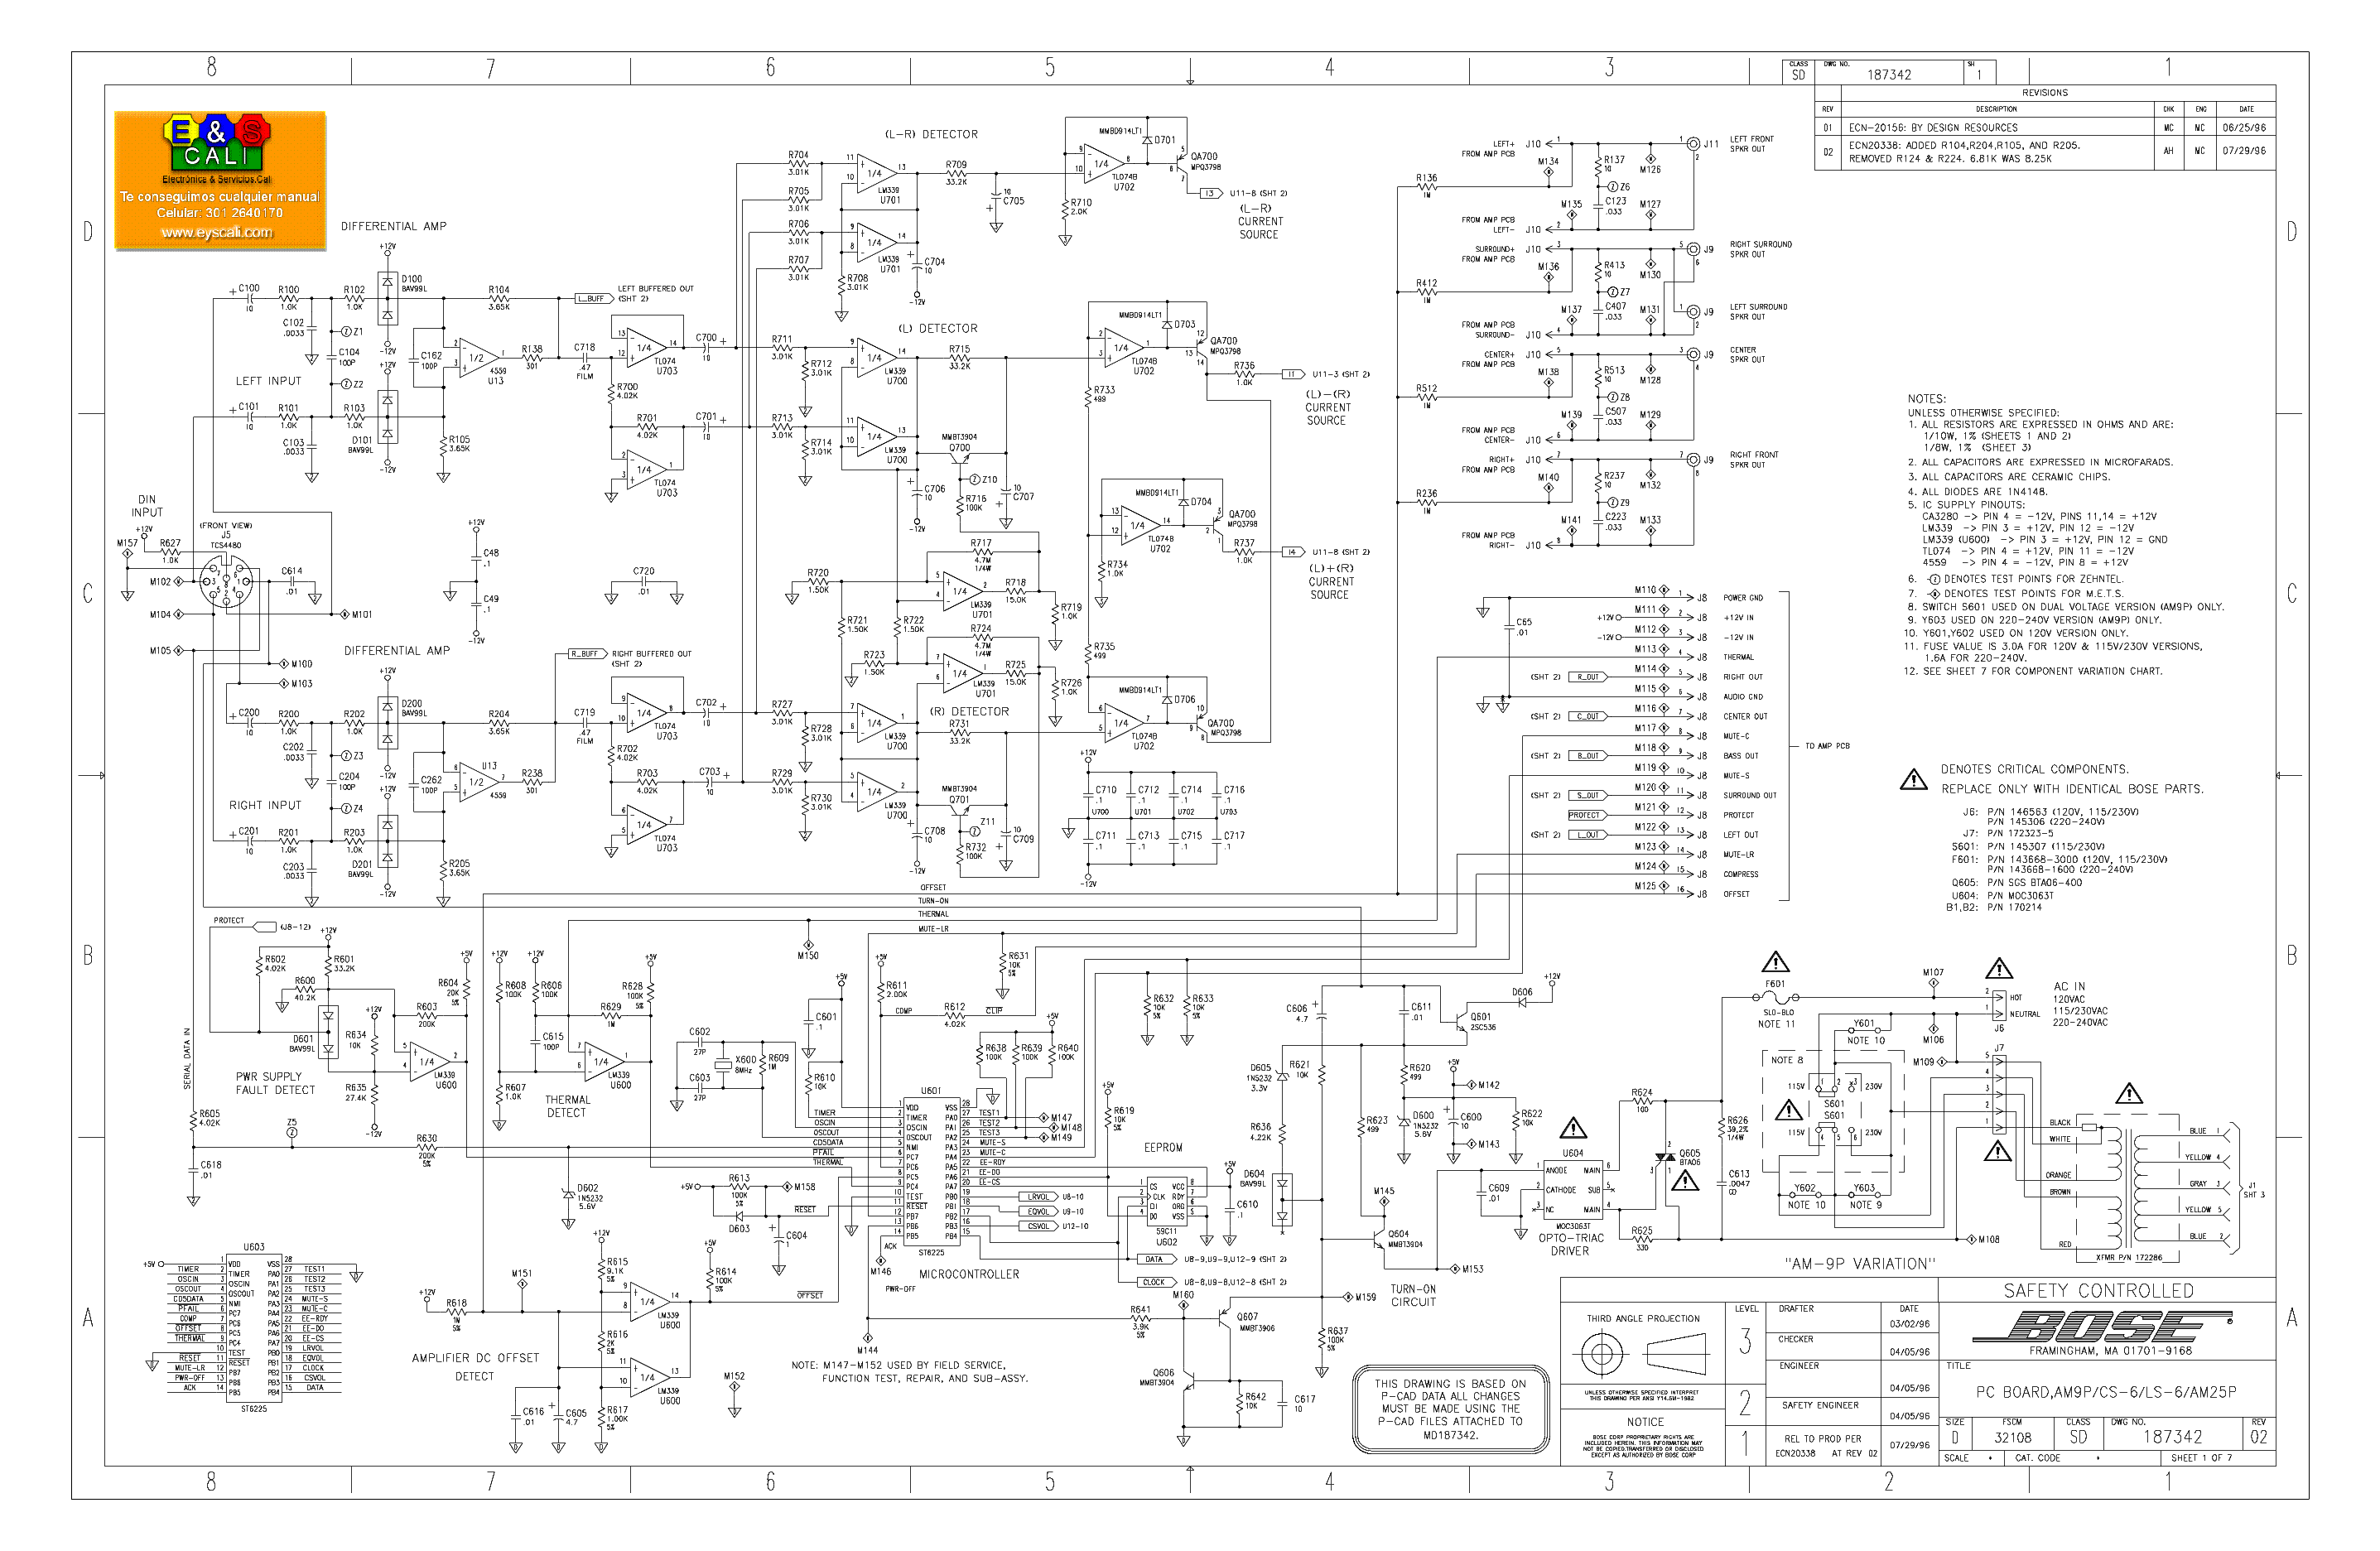 bose amp wiring diagram manual bose image wiring bose amplifier schematic diagram jodebal com on bose amp wiring diagram manual